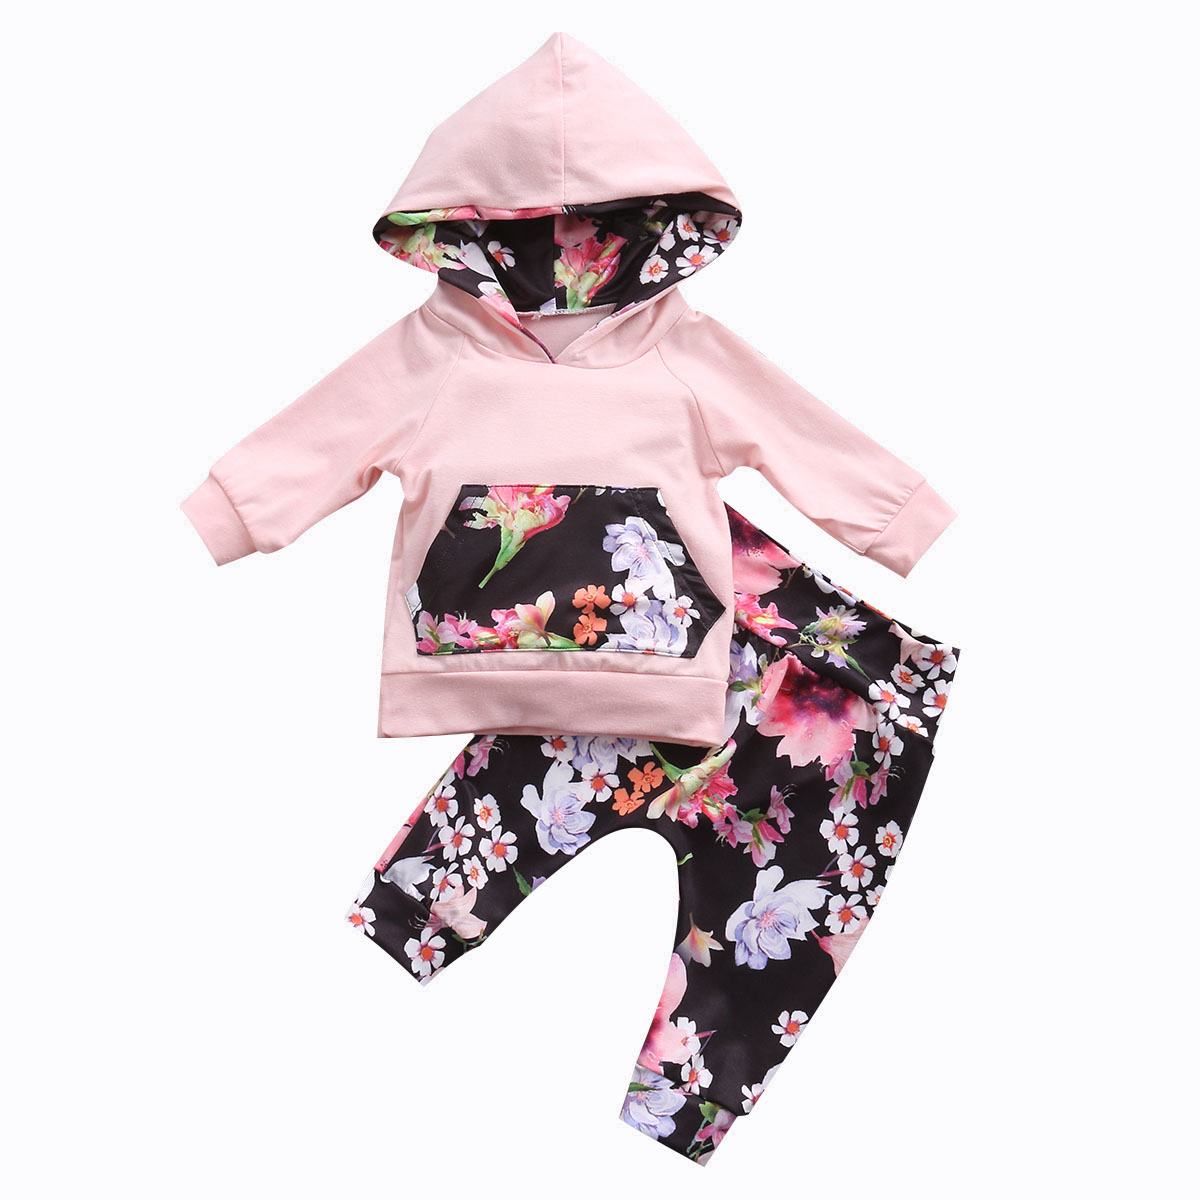 Newborn baby girl clothes set Infant baby Girls Clothes Hooded Long sleeve T-shirt+Floral pants Cute Autumn Baby girl clothing